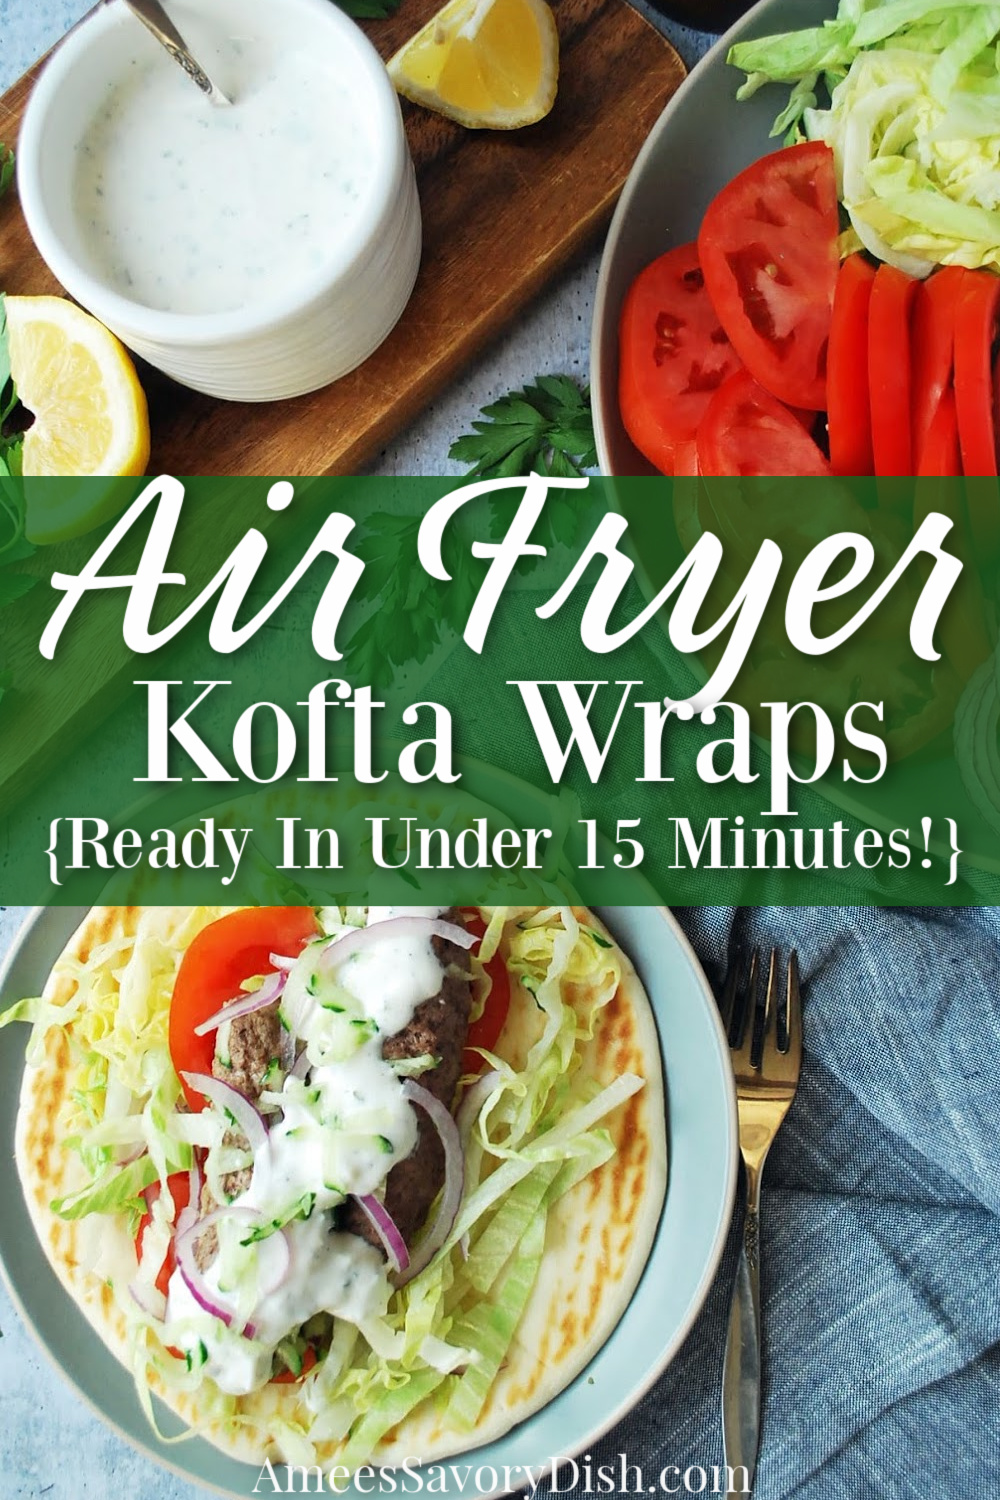 This flavorful air fryer kofta recipe is made with a mixture of lean ground beef and lamb and cooks to perfection in an air fryer in under 15 minutes! #kofta #kofte #airfryerrecipe #airfryerkofta #beefrecipe #lamb #mediterranean via @Ameessavorydish